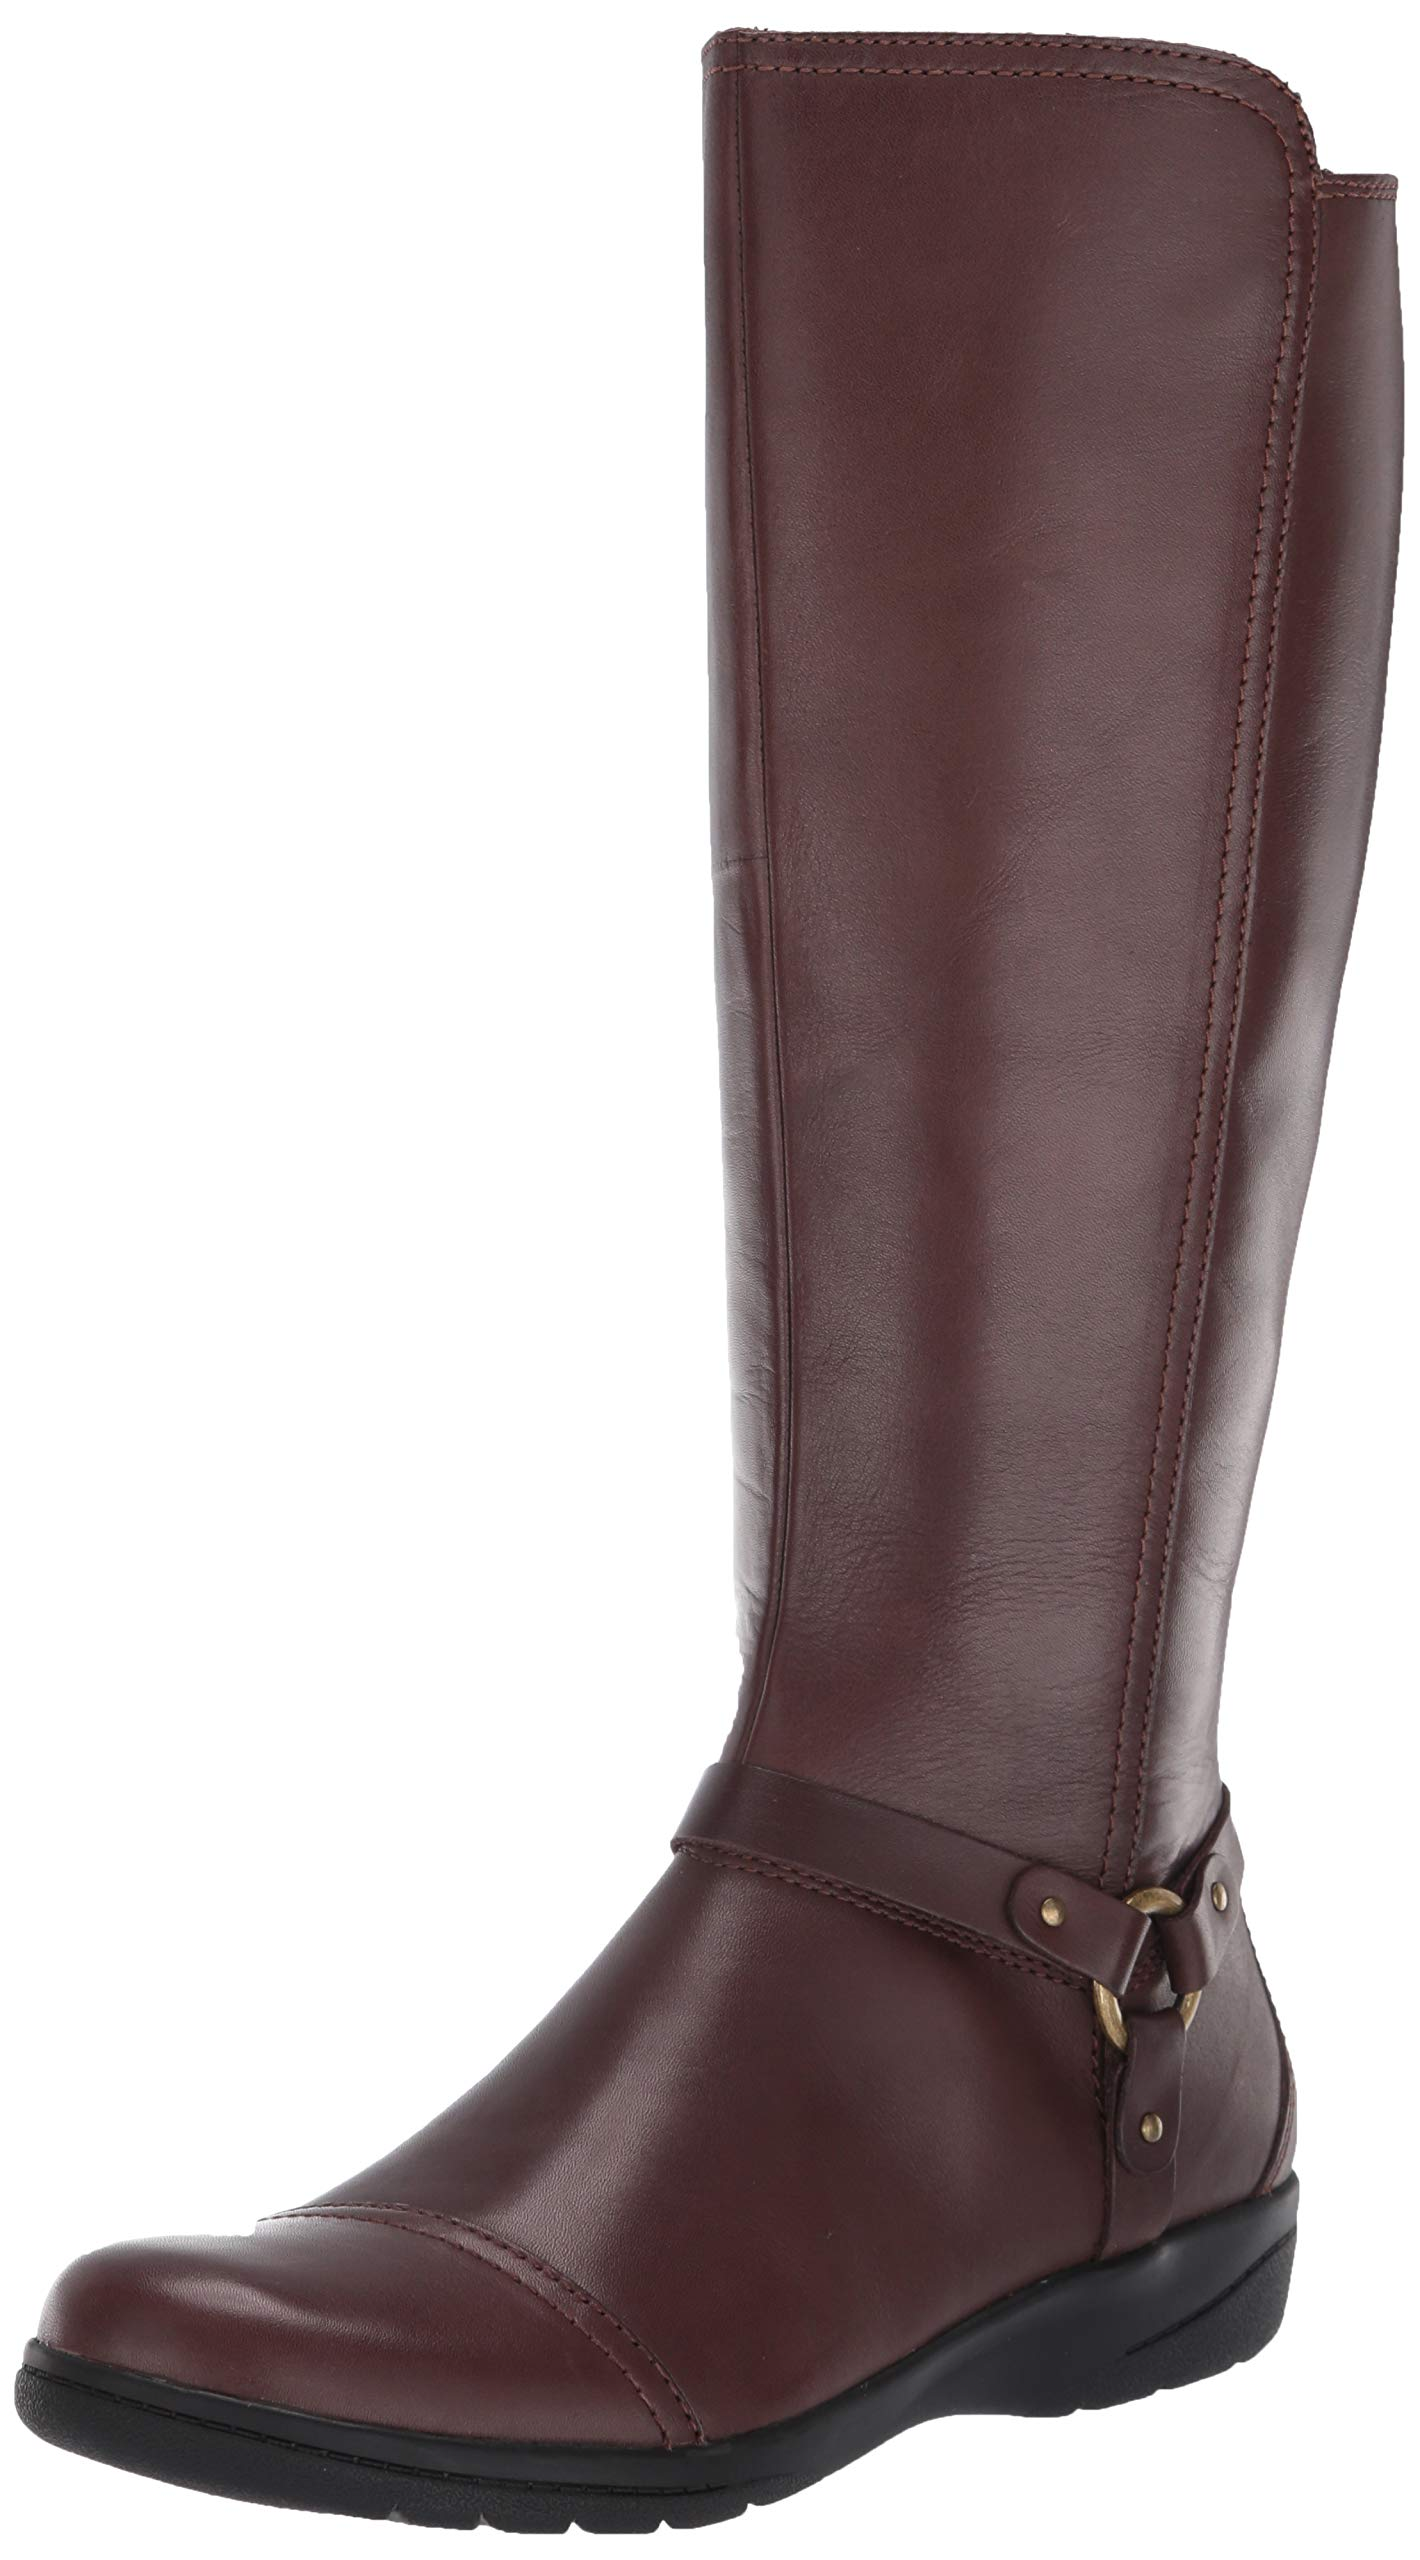 CLARKS Women's Cheyn Lindie Knee High Boot, Dark Brown Leather/Synthetic C, 75 W US by CLARKS